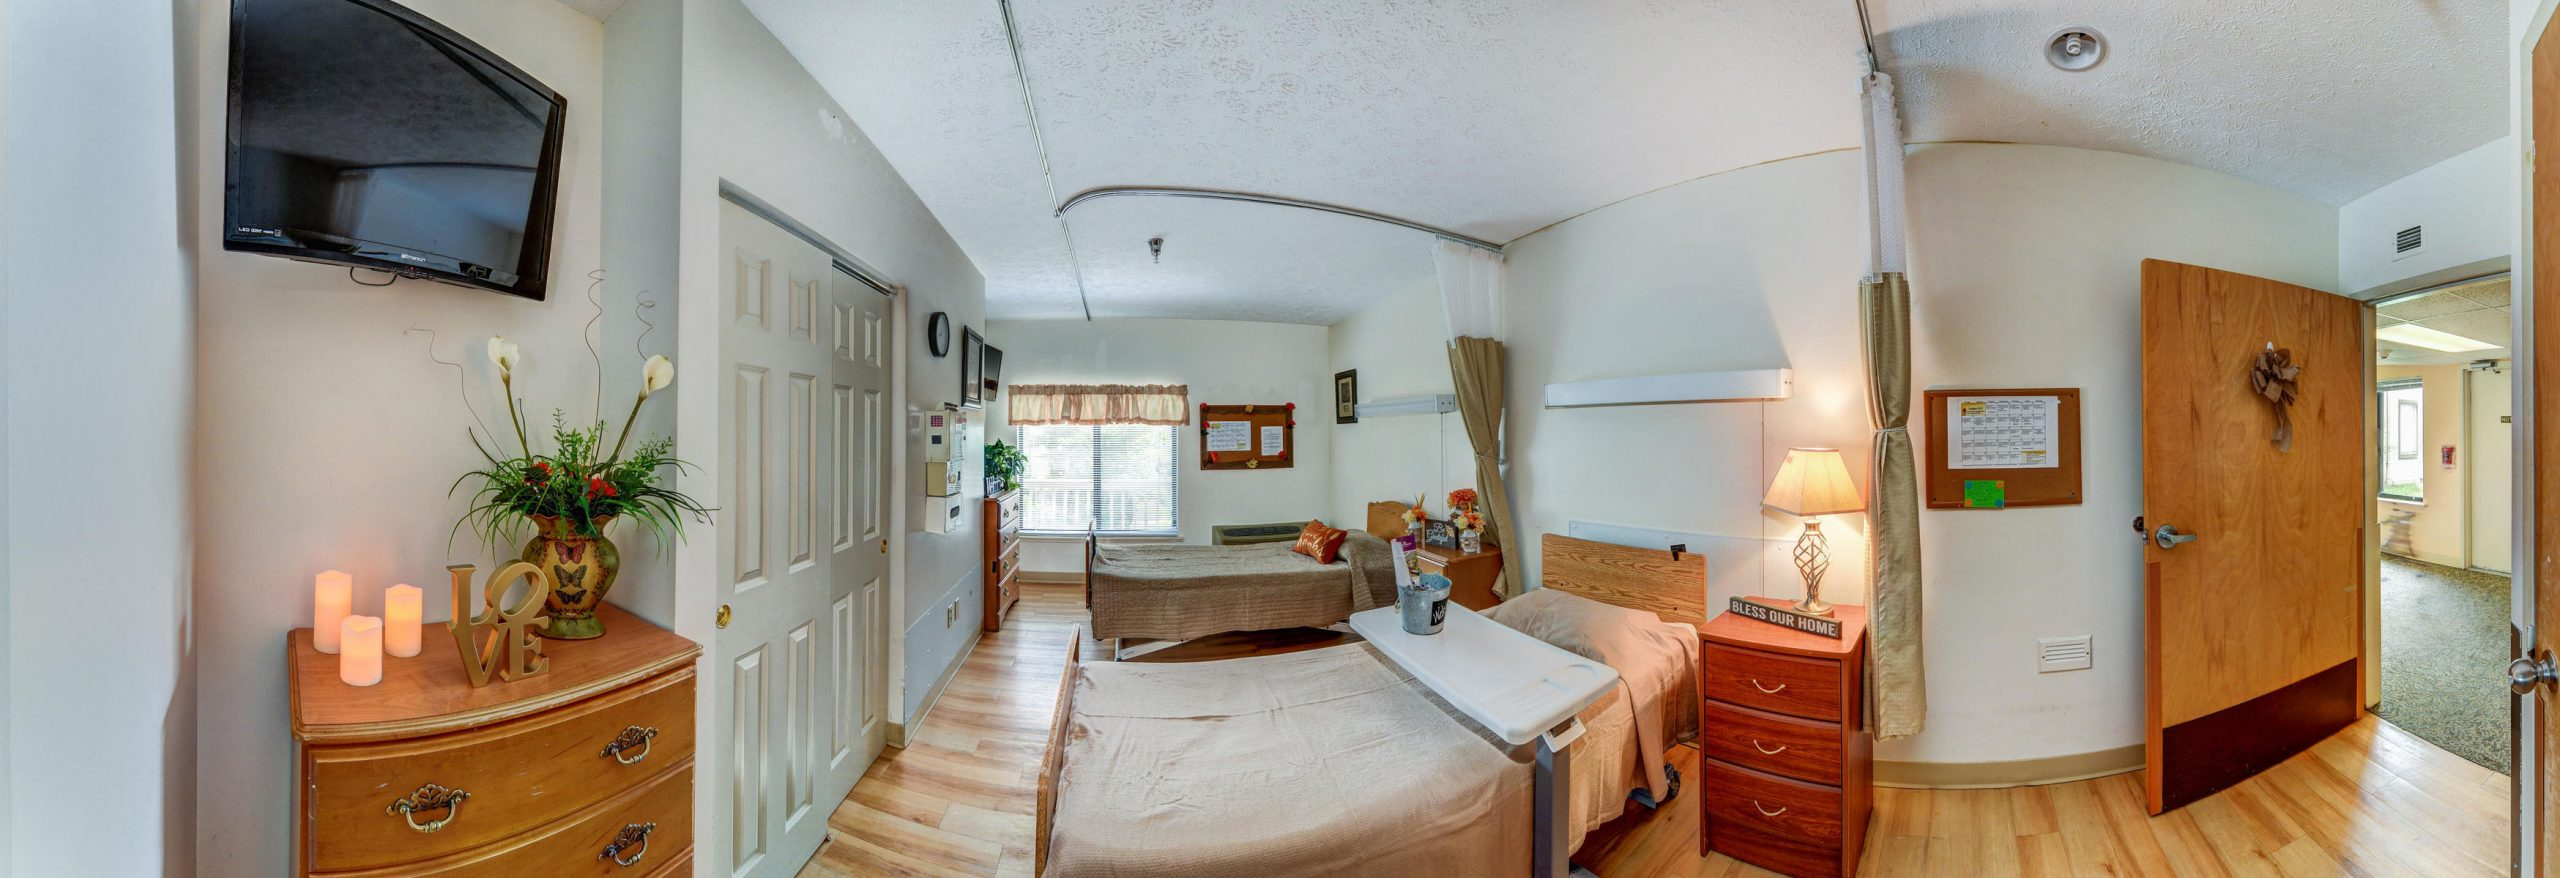 Panoramic view of Stonerise Parkersburg patient room with two beds and TV